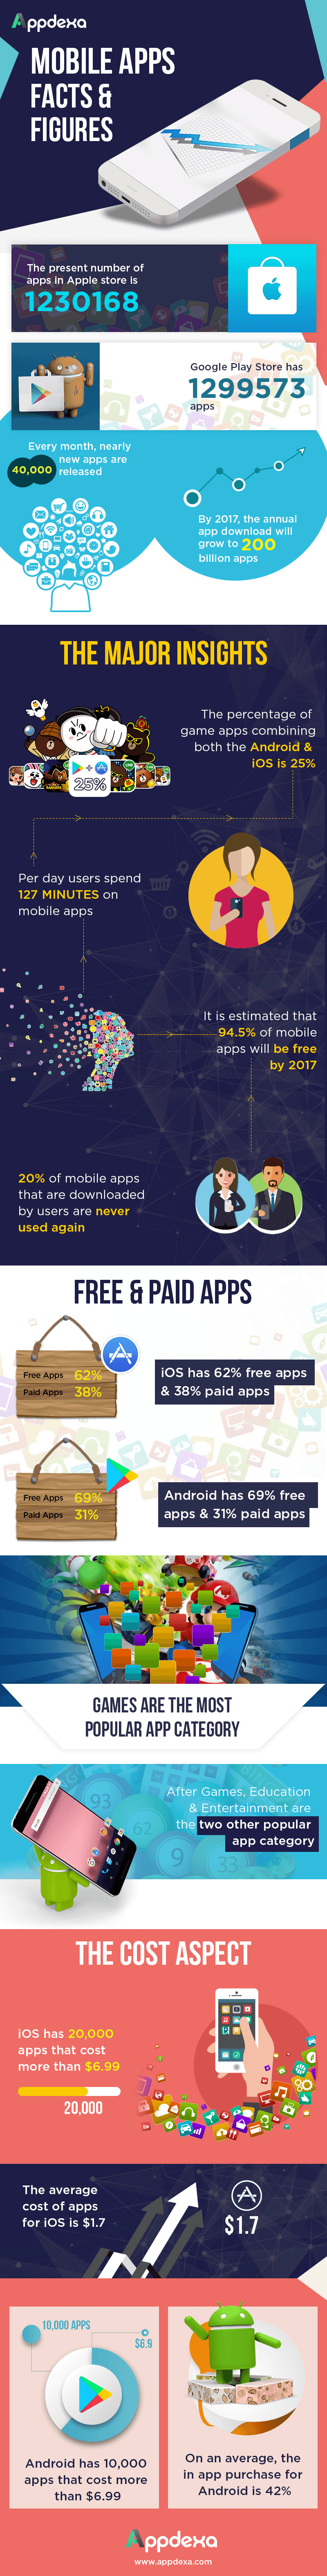 mobile-app-facts-figures